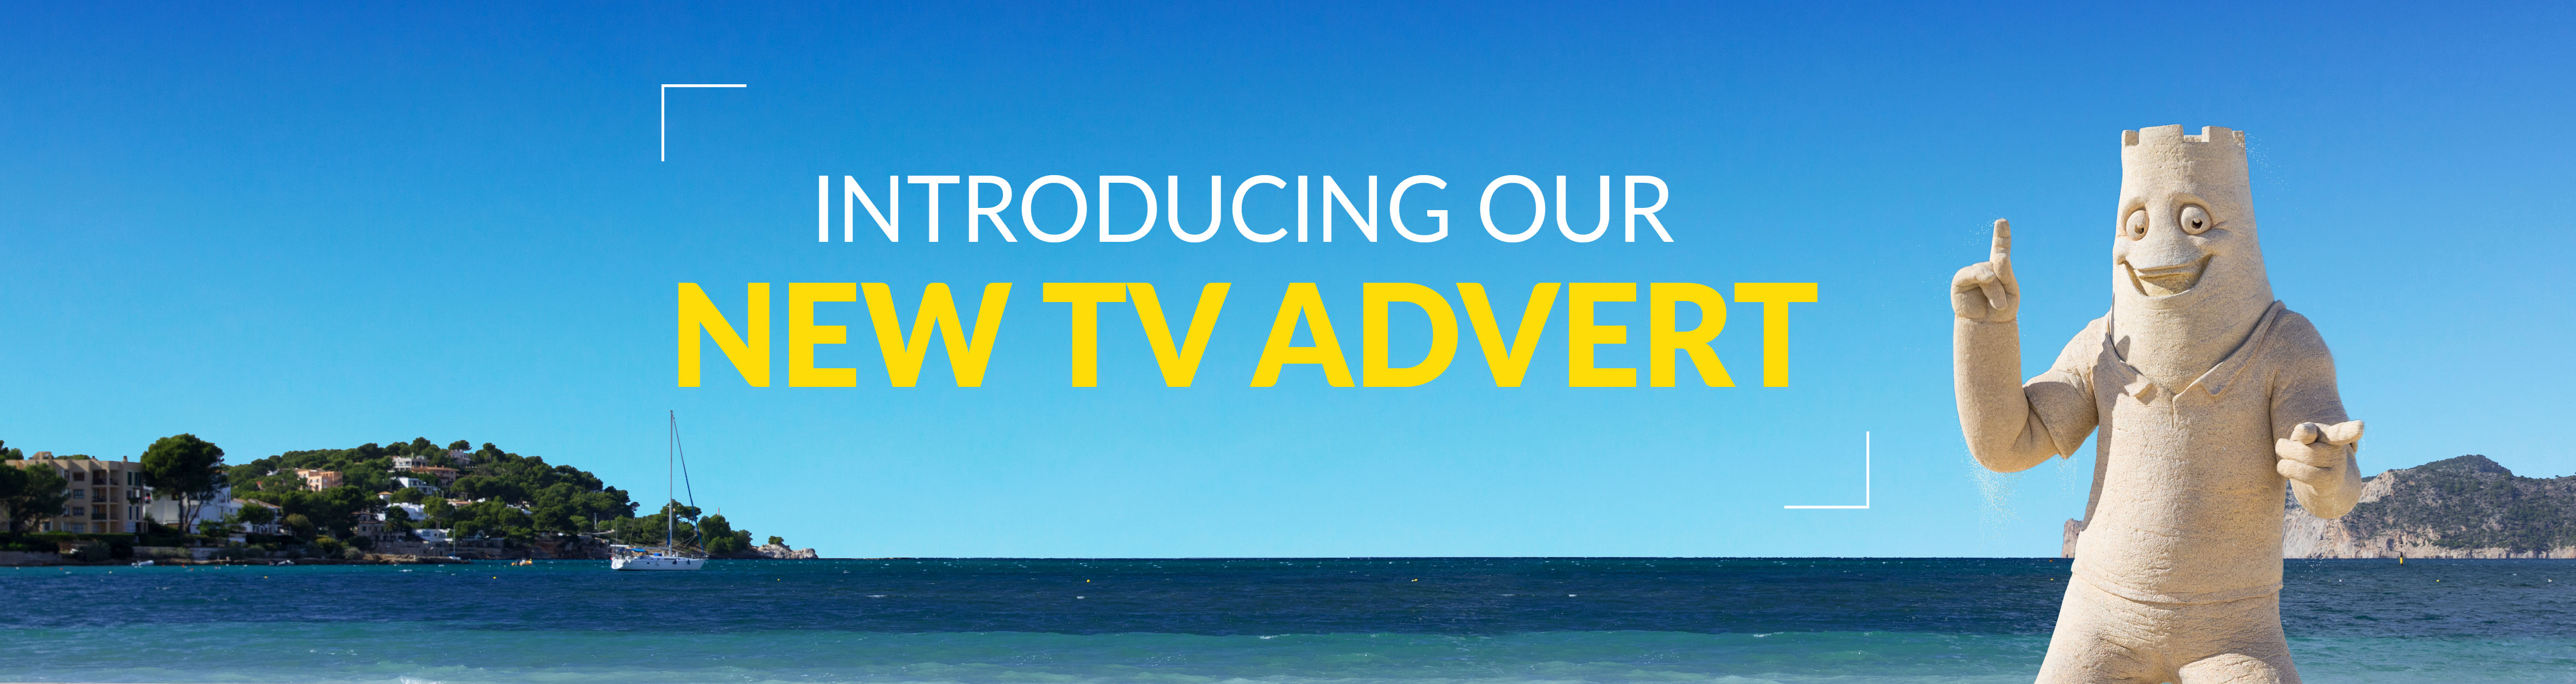 Introducing our new TV ad